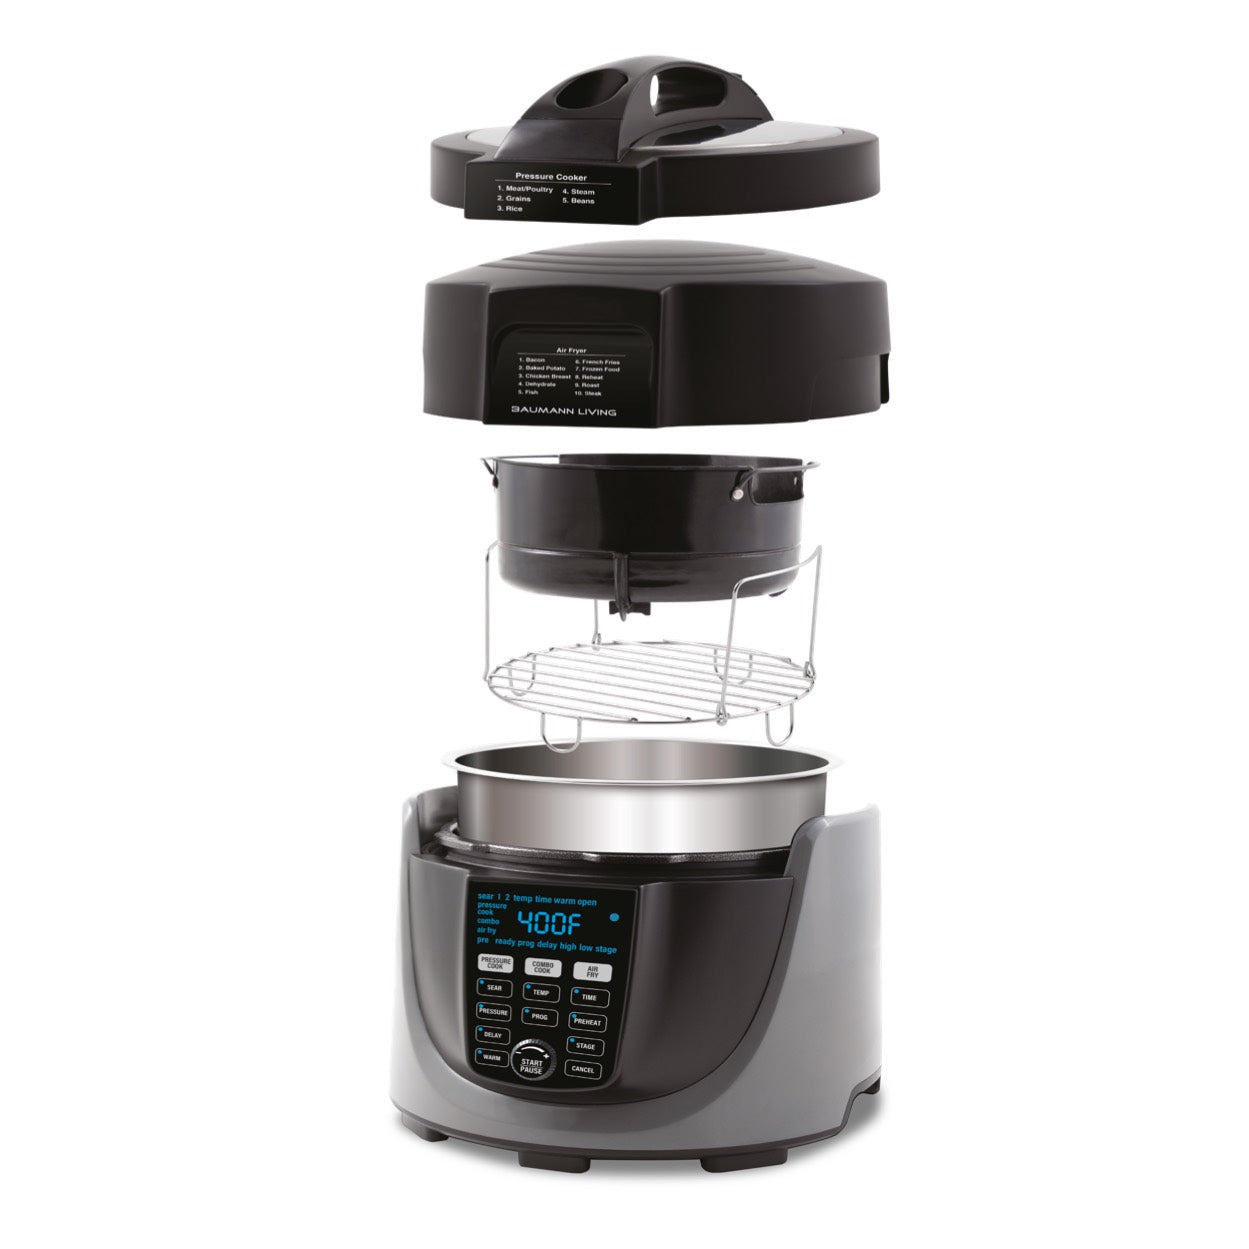 Duo Pressure Cooker & Air Fryer